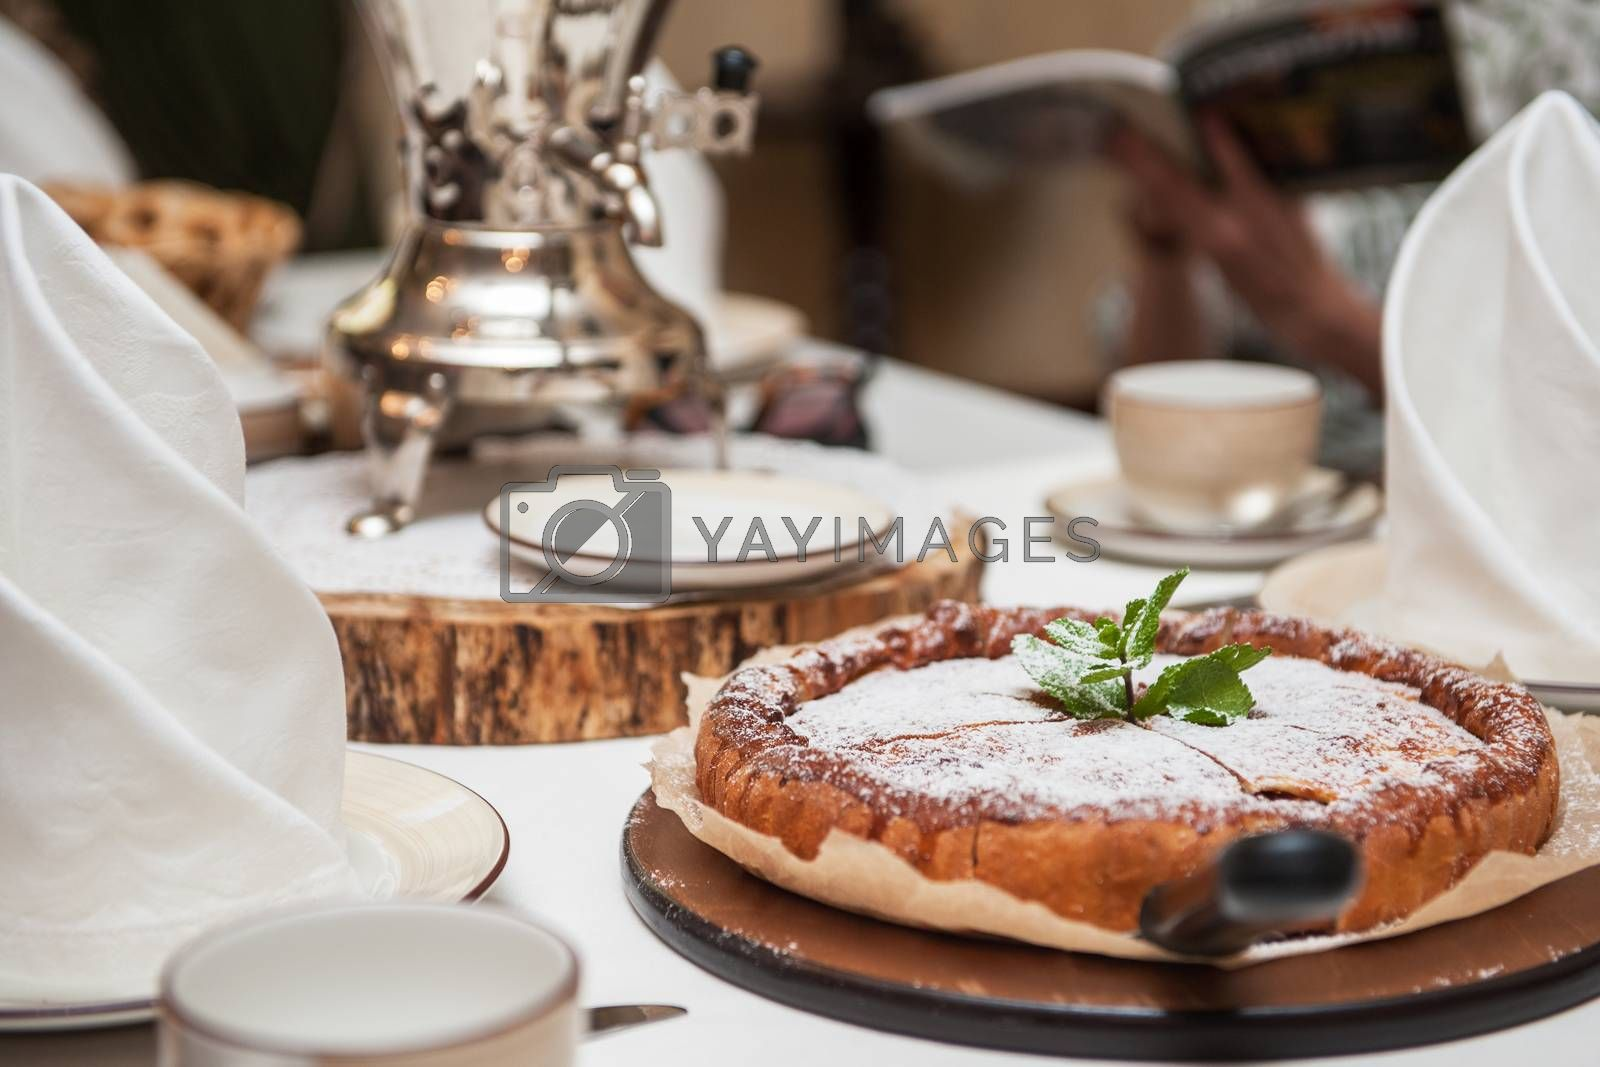 Apples pie with samovar on the served table